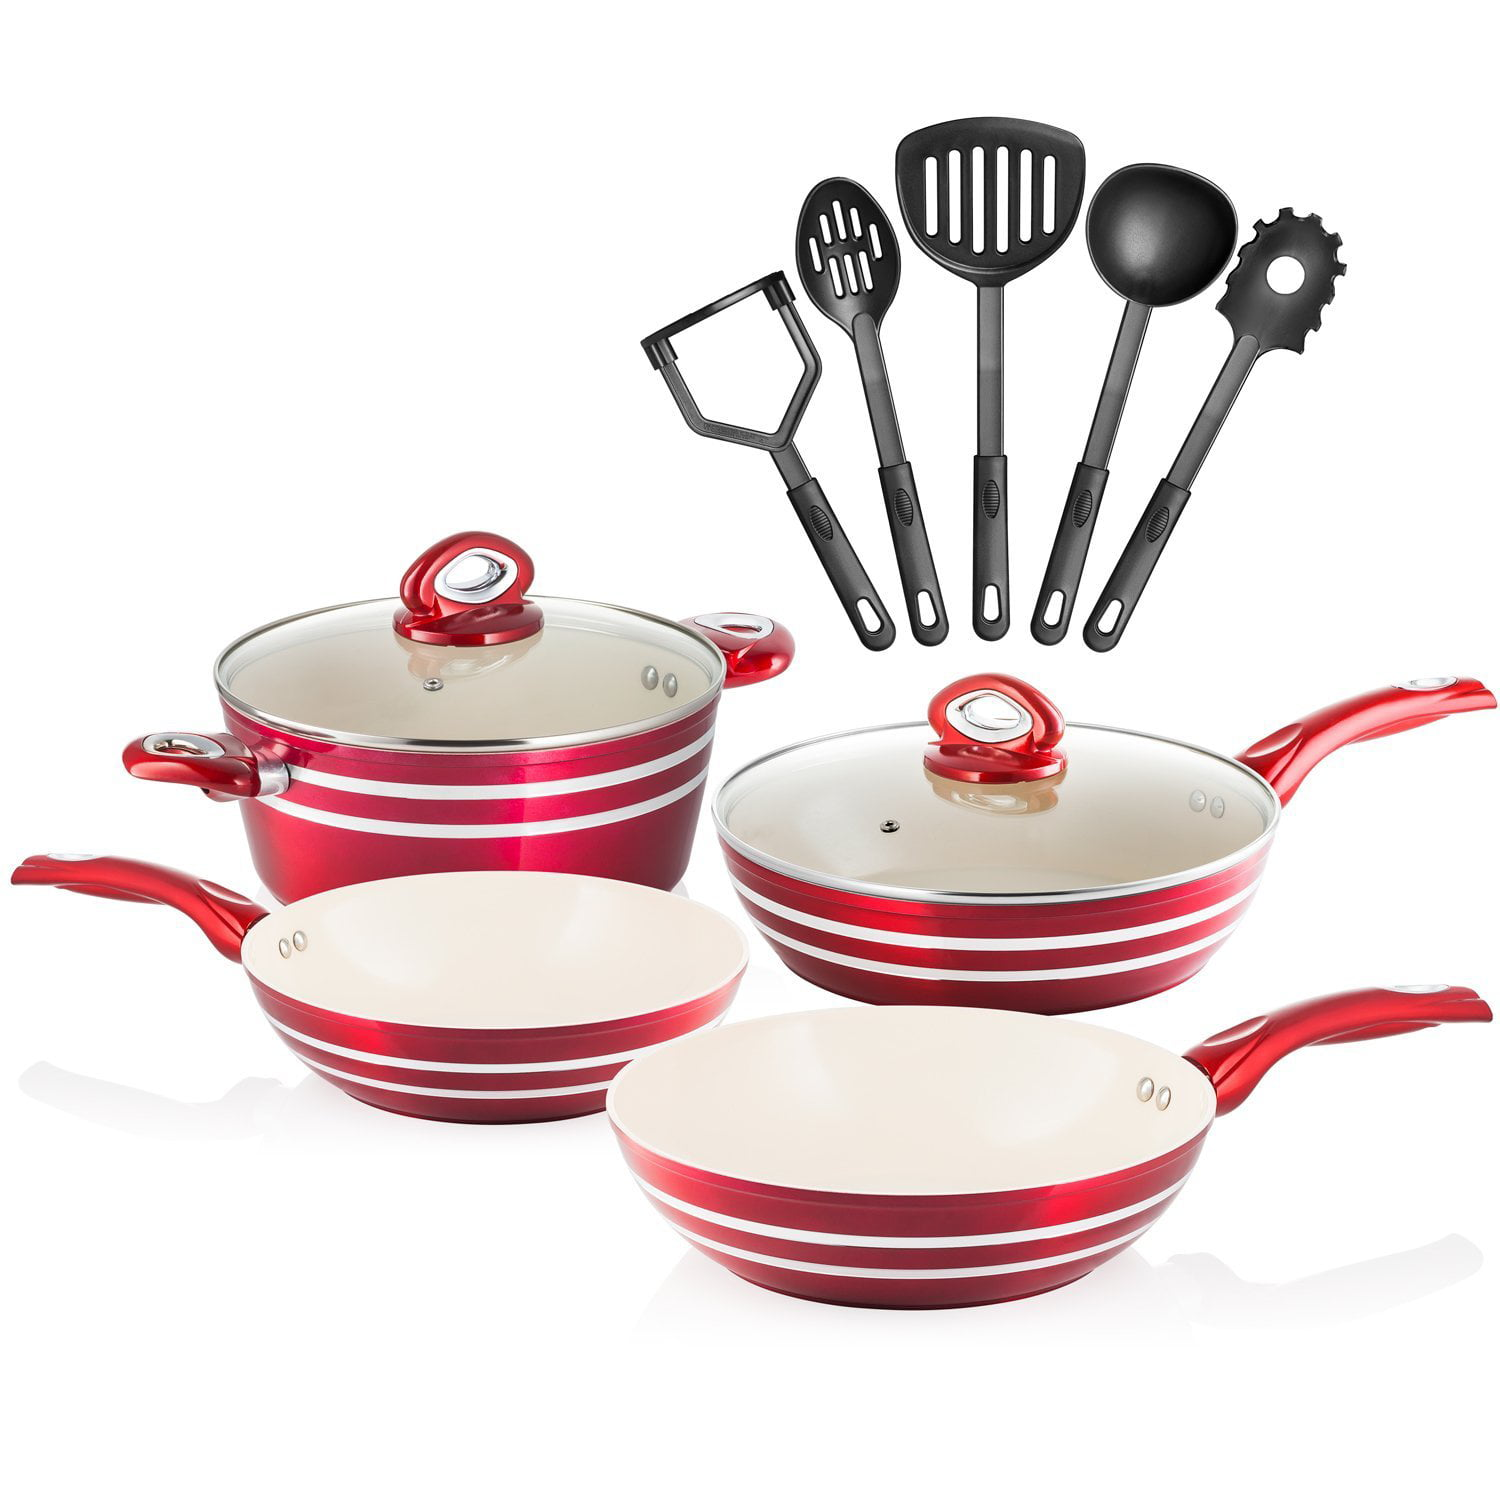 Chef's Star 11 Piece Professional Grade Aluminum Non-stick Pots & Pans Set Induction Ready Cookware Set Red  ... by Unassigned